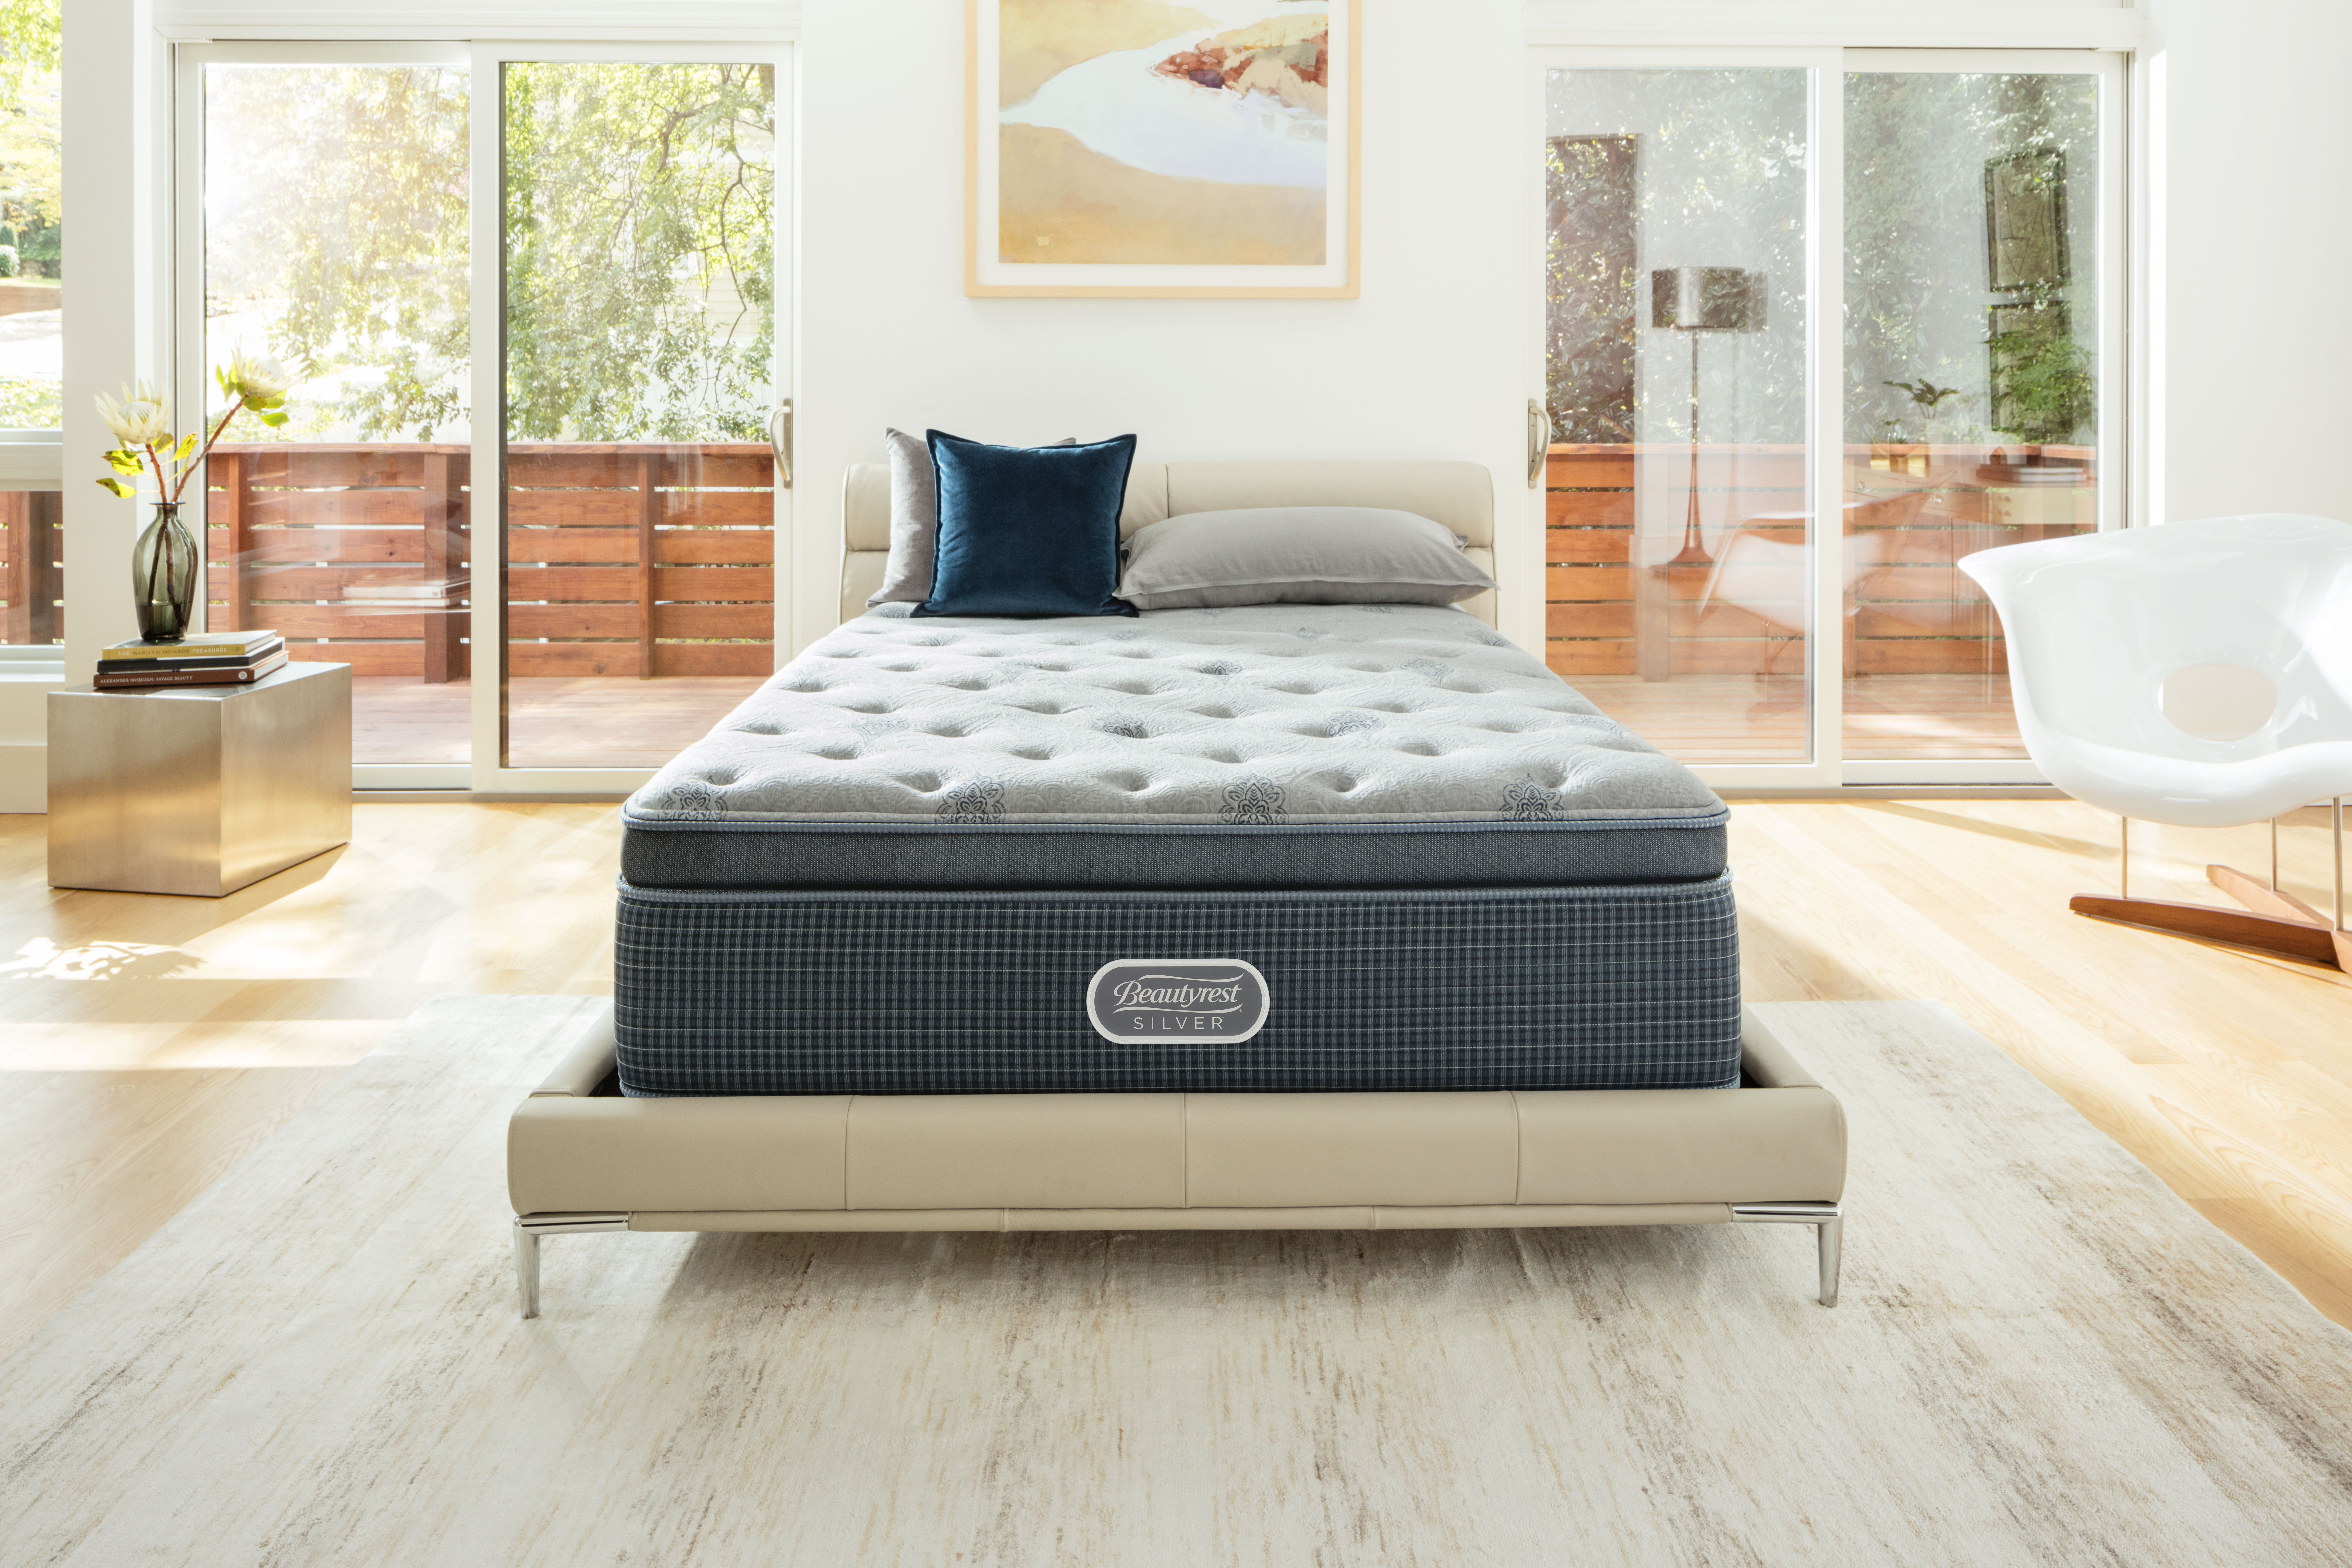 Simmons Beautyrest Silver Mattress